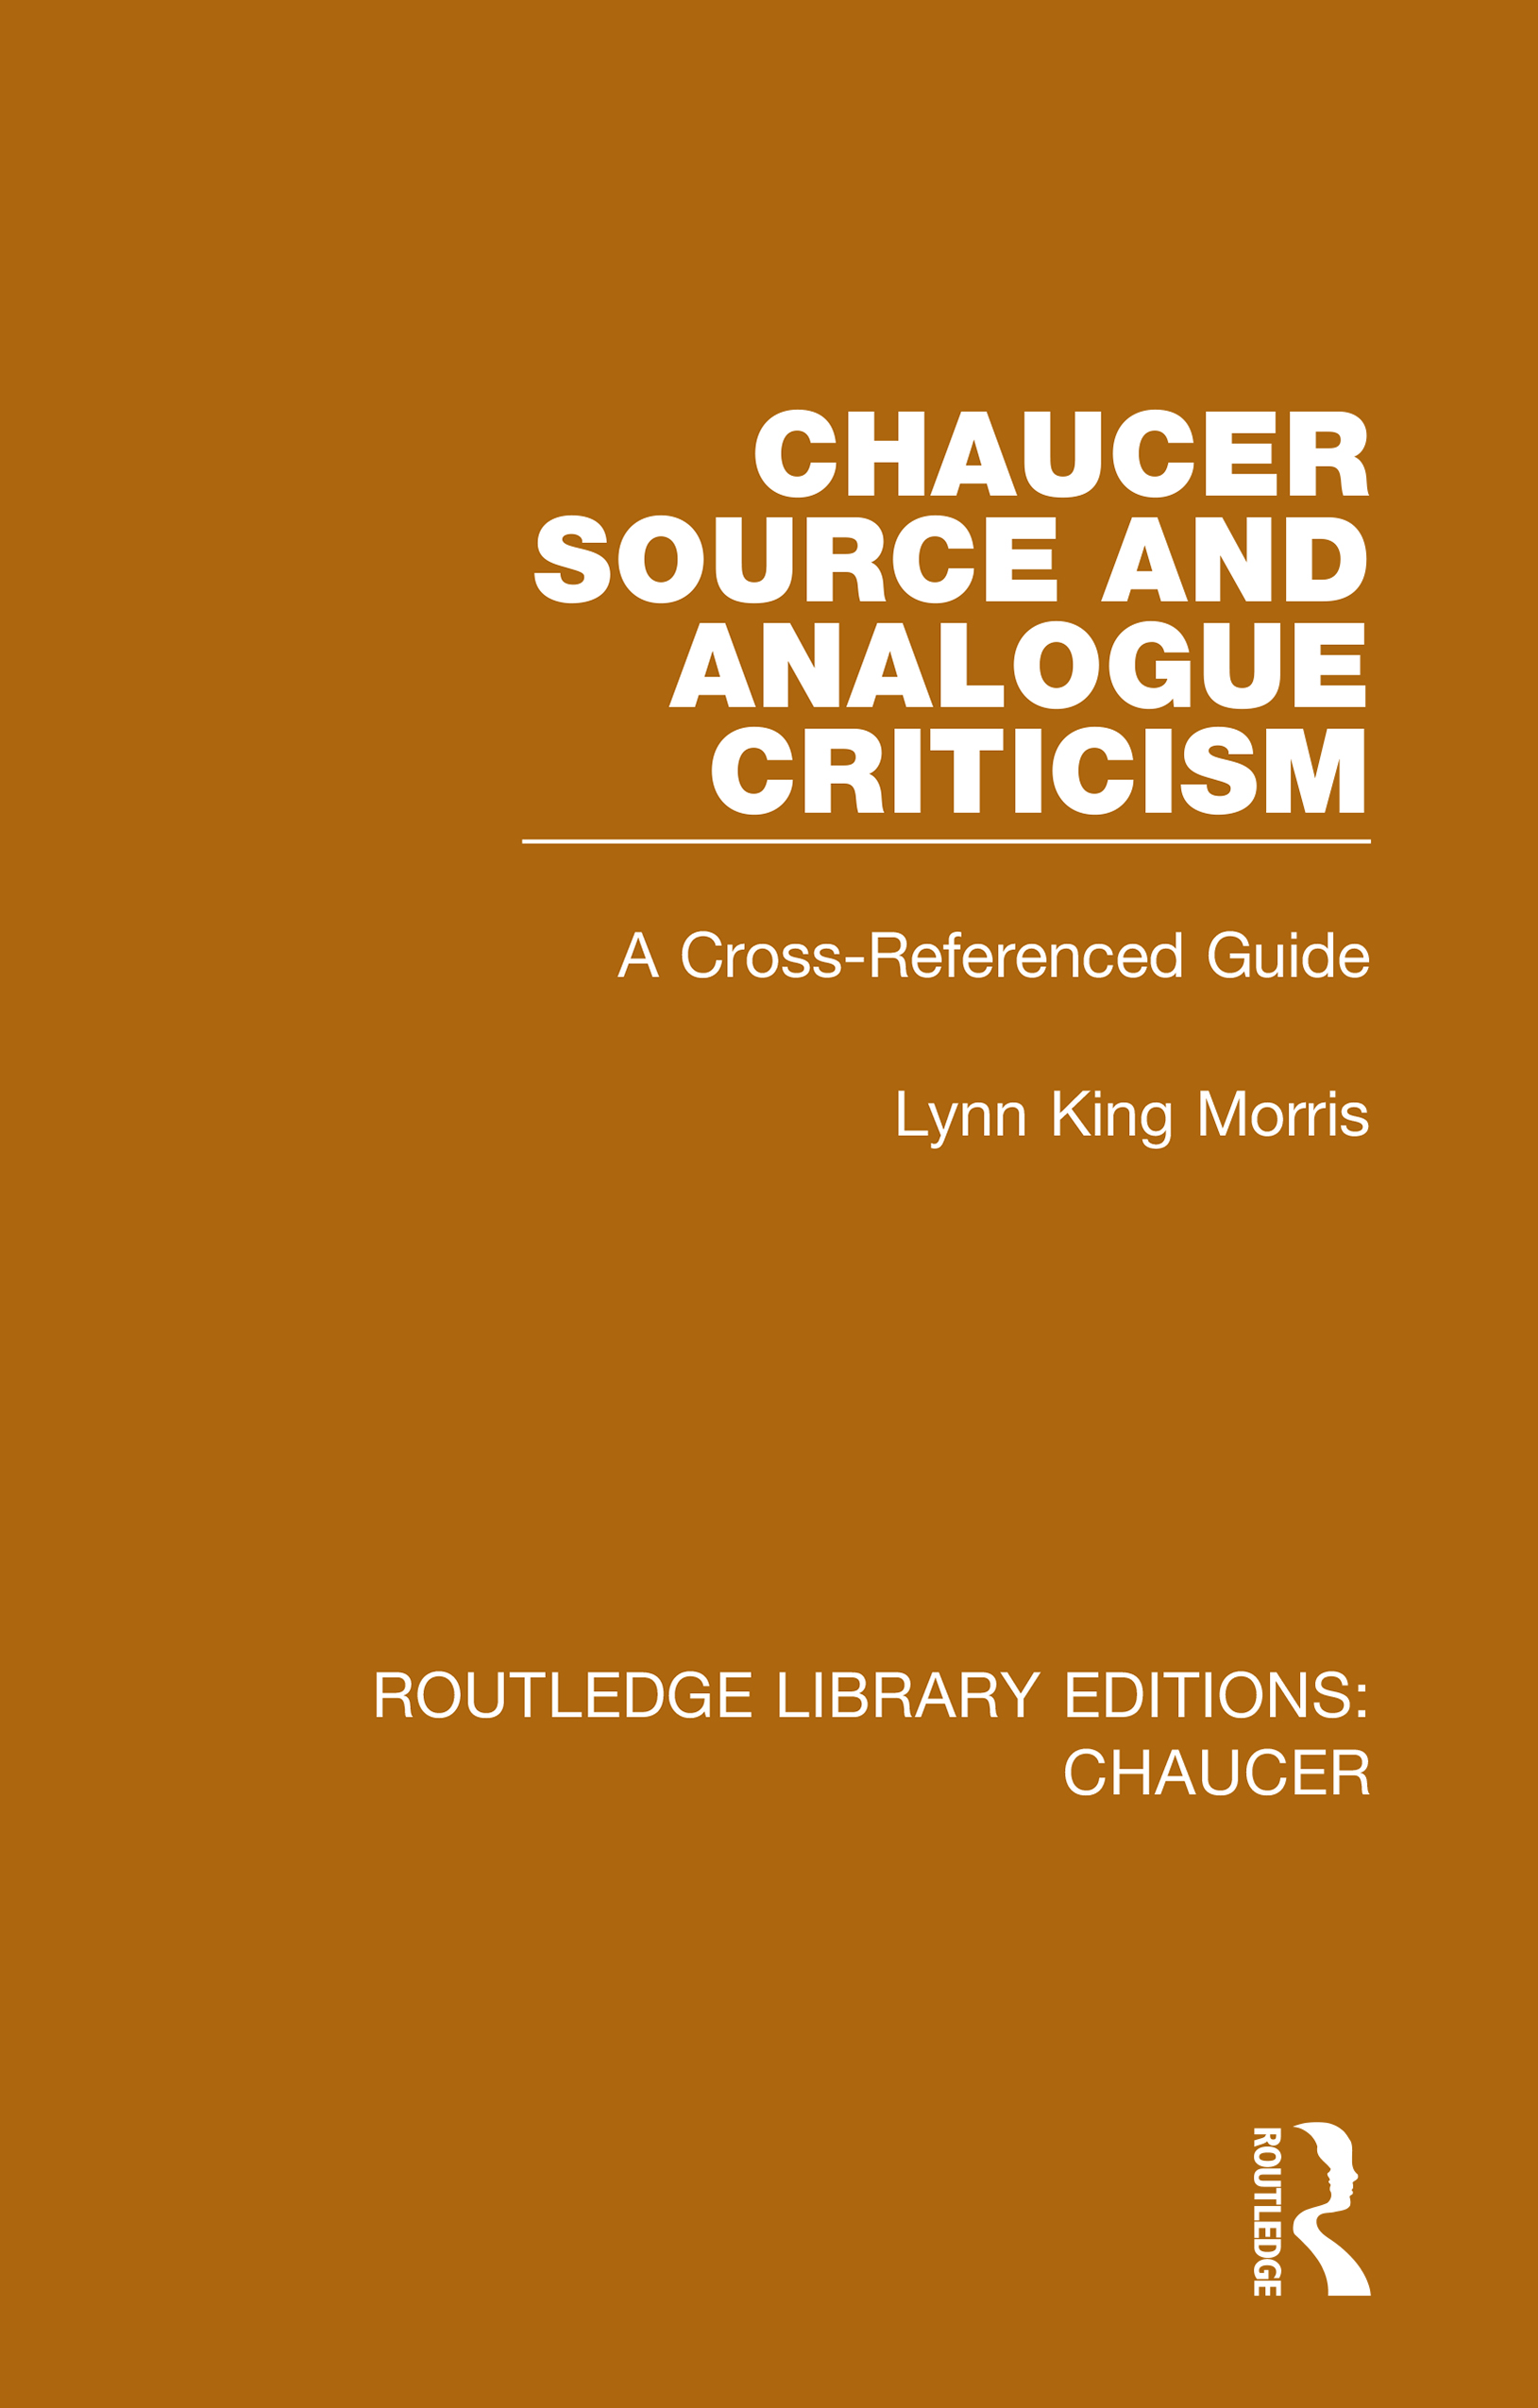 Chaucer Source and Analogue Criticism